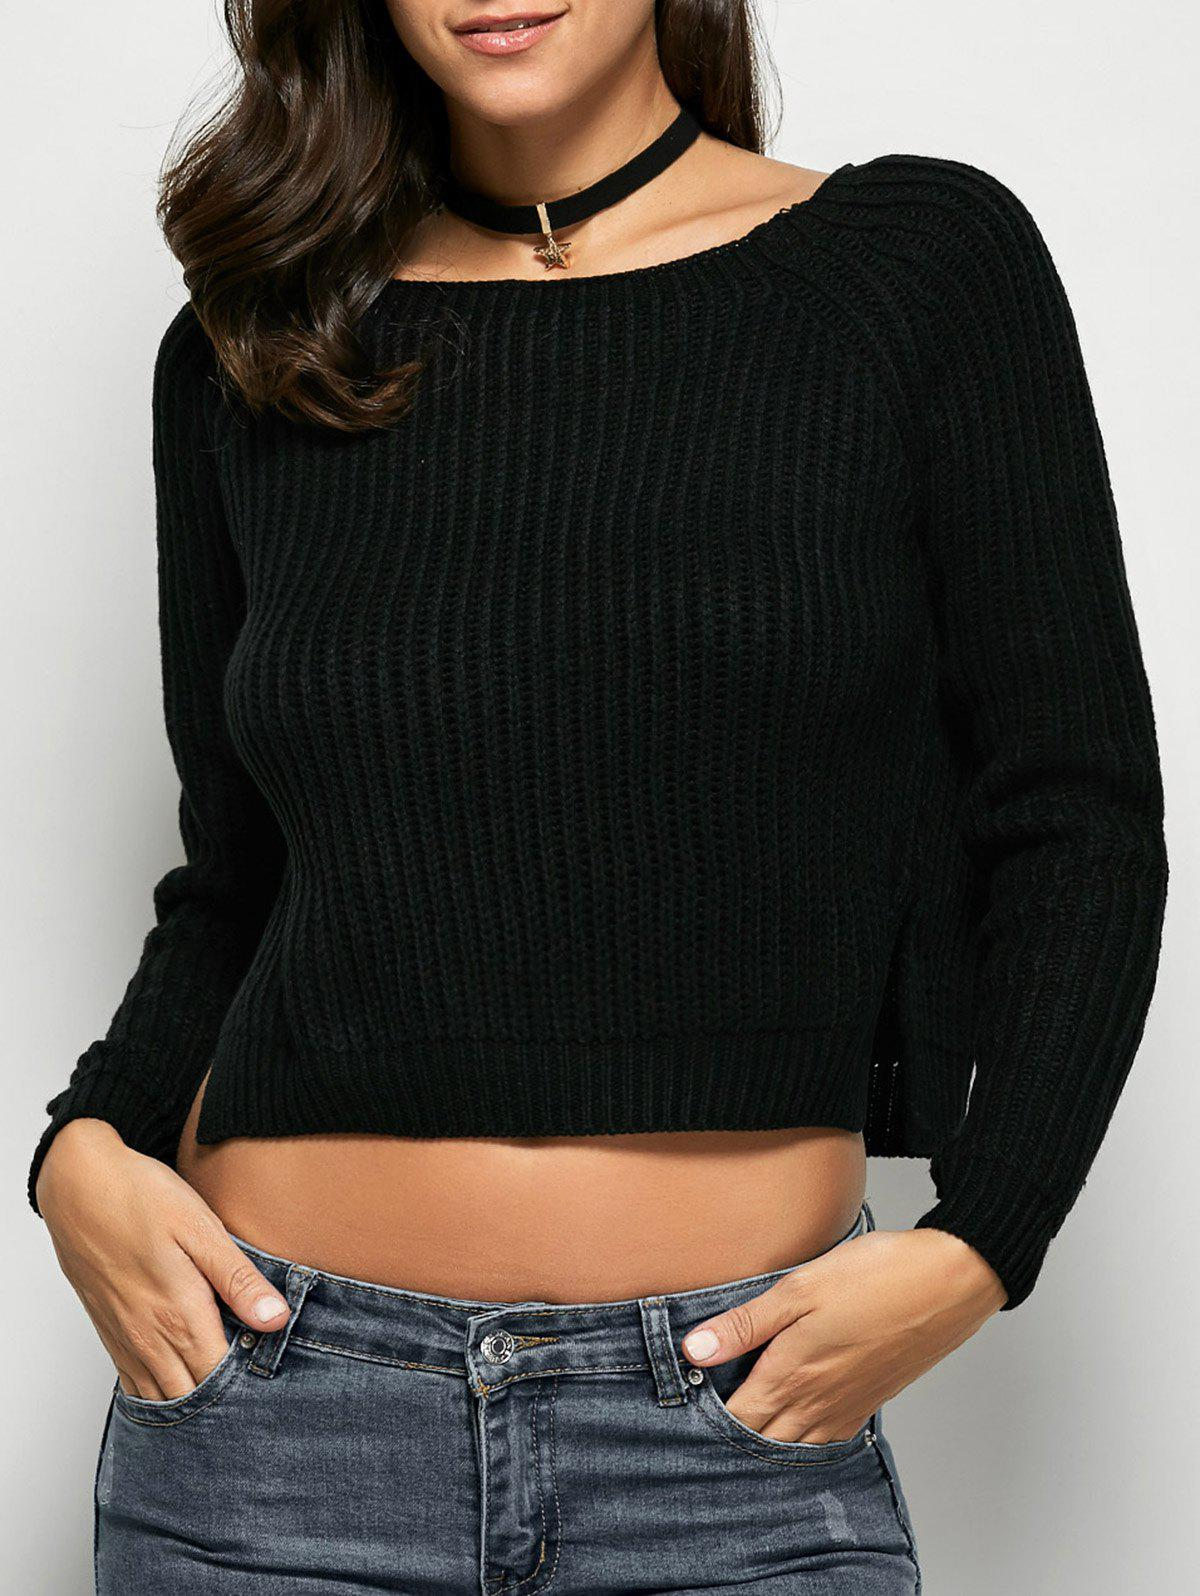 Cropped Ribbed Sweater inc new deep black women s xl shimmer ribbed cowl neck cropped sweater $79 112